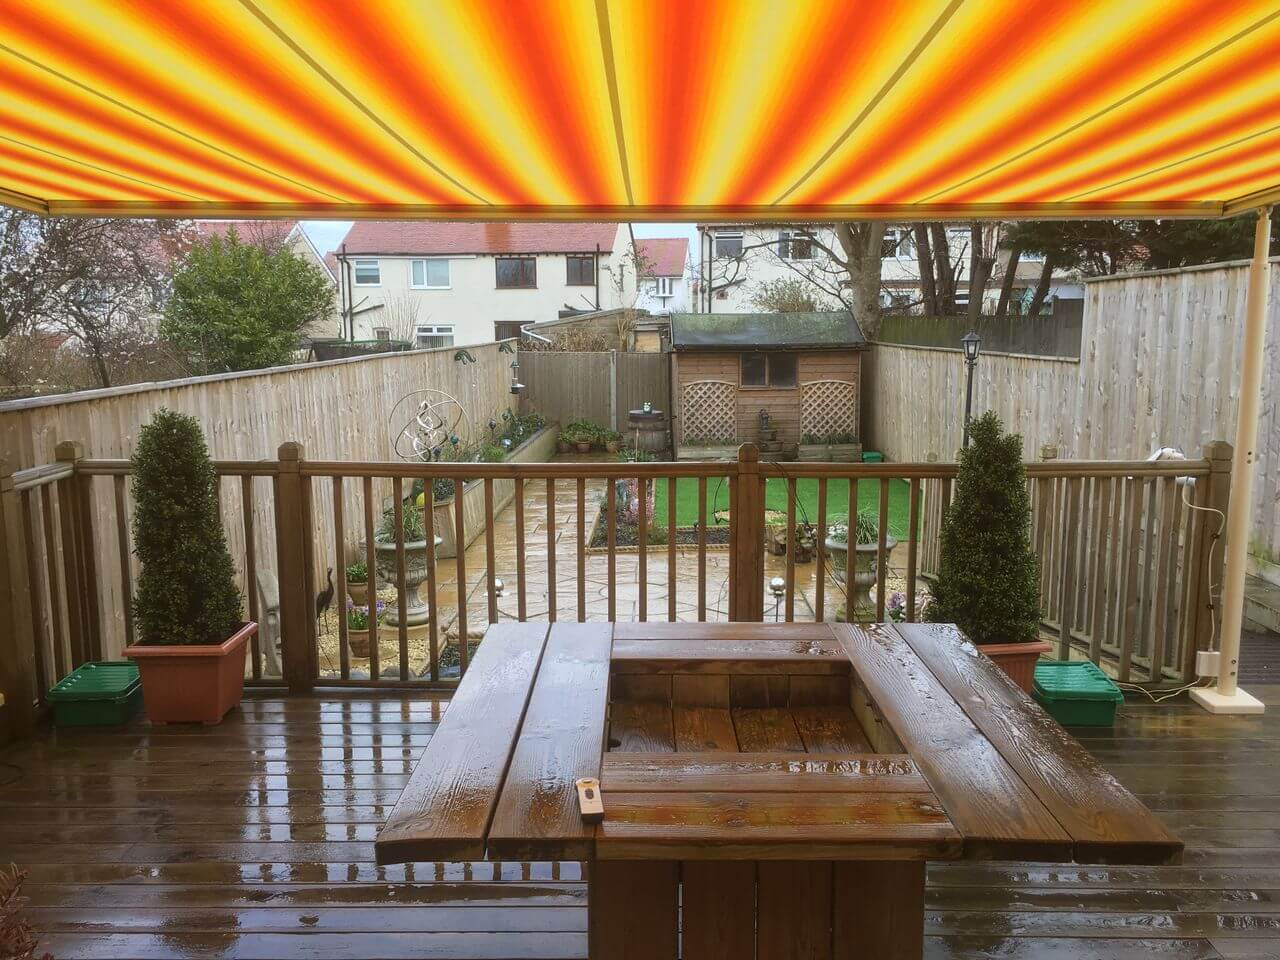 Markilux pergola over timber decking and patio